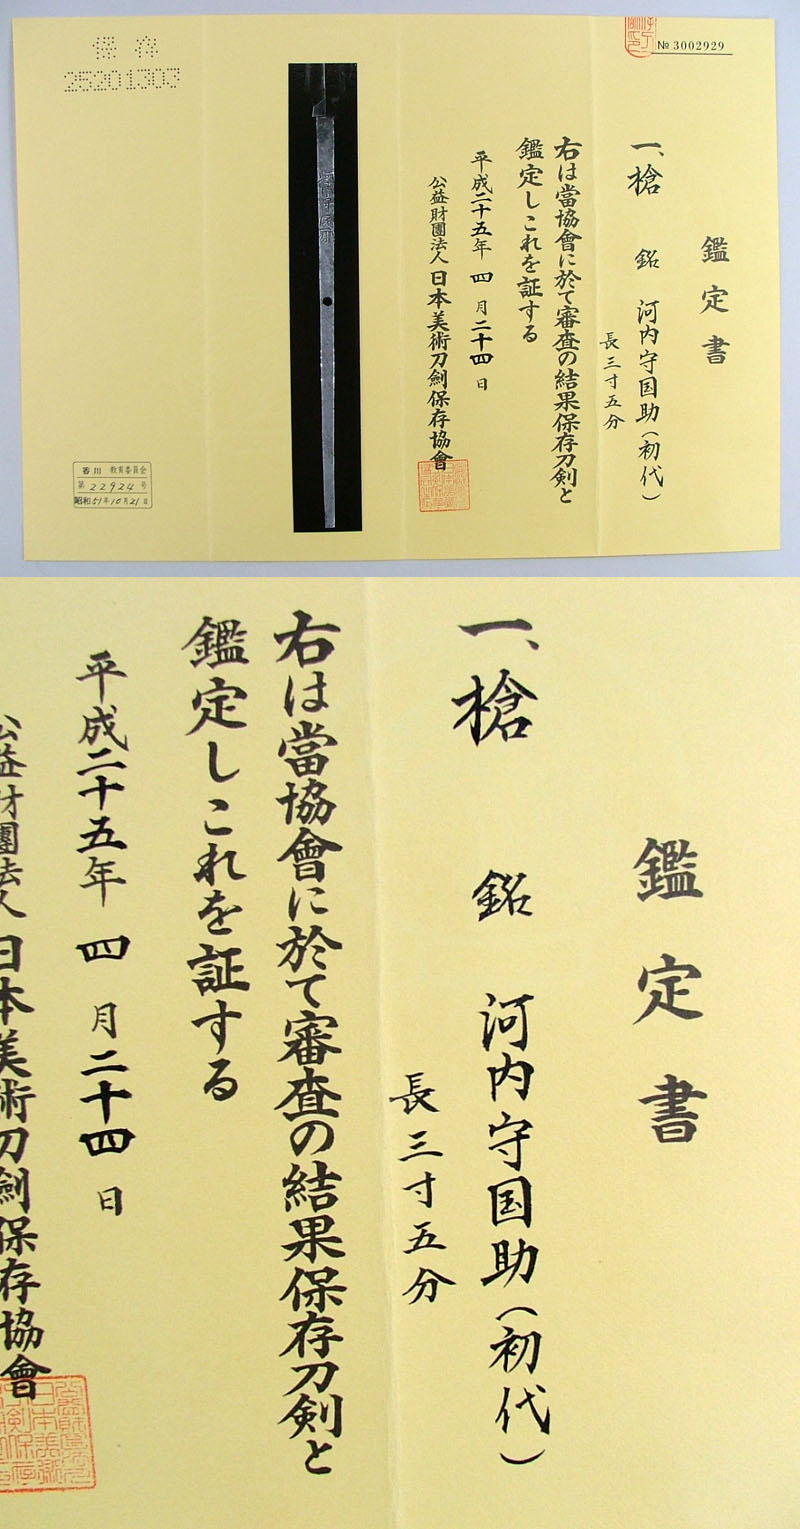 河内守国助(初代) Picture of Certificate